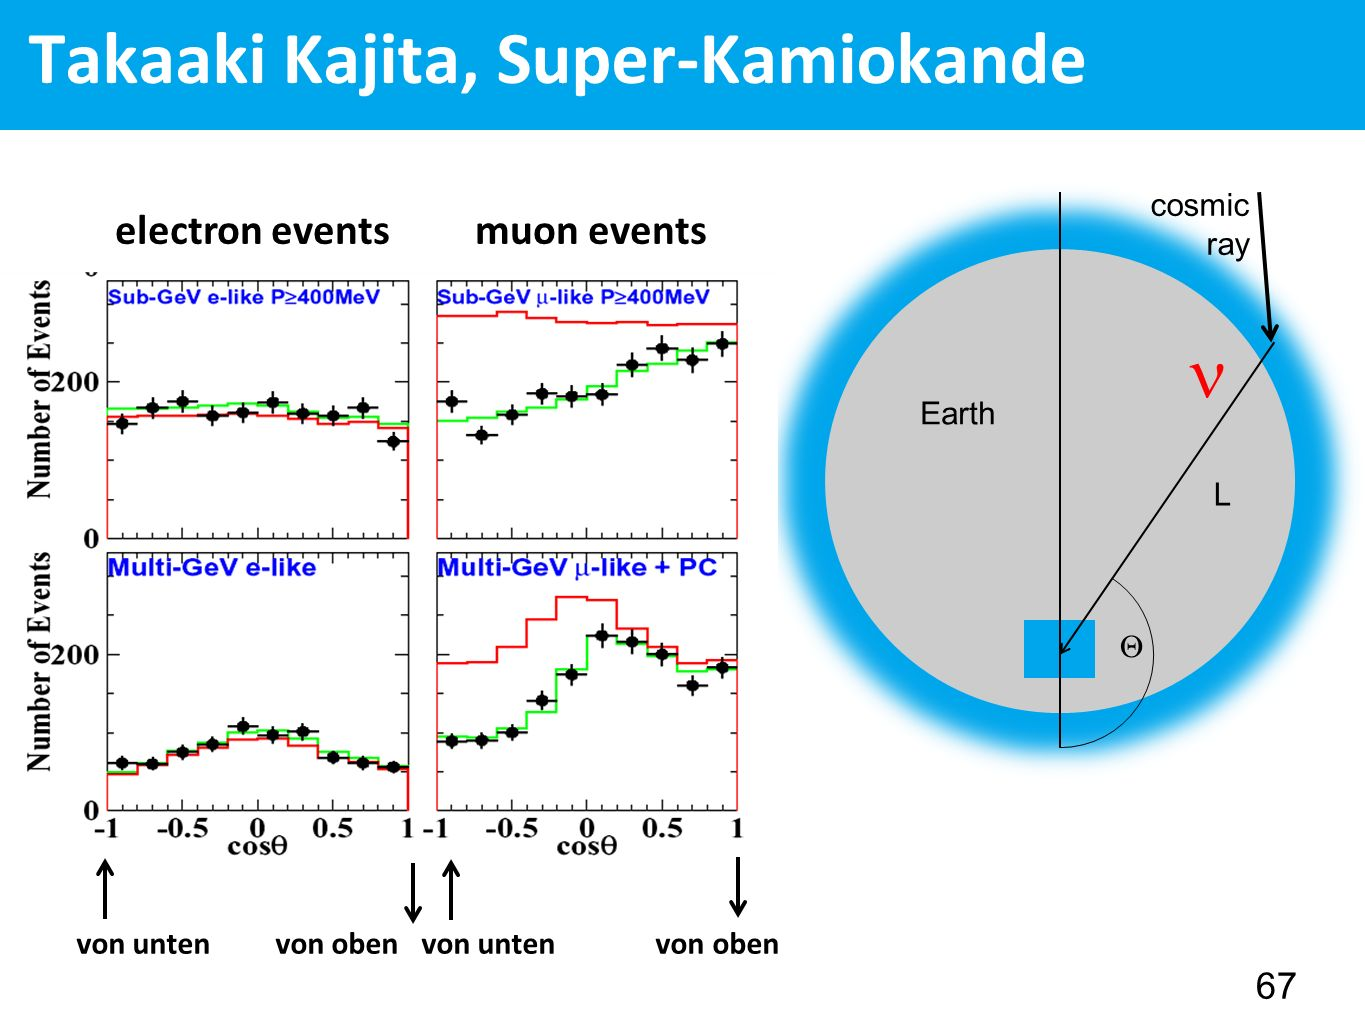 Takaaki Kajita, Super-Kamiokande 67  Earth cosmic ray L electron events muon events von unten von oben